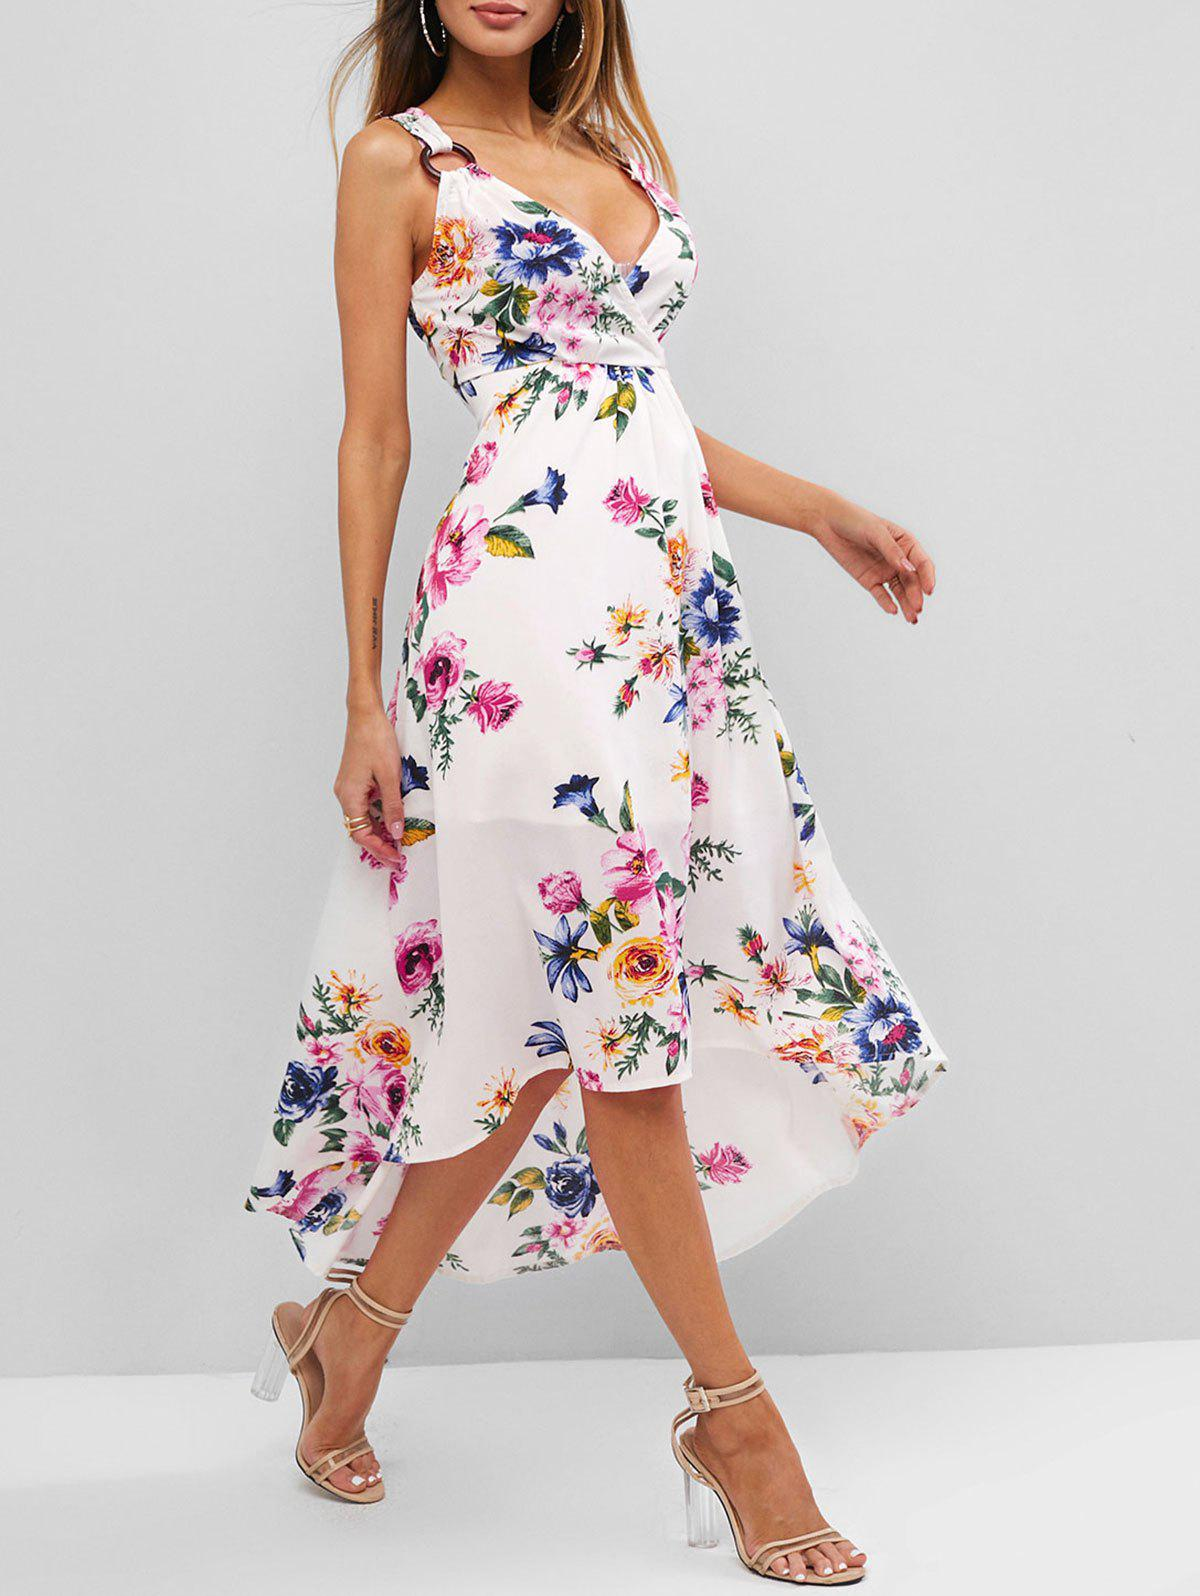 Flower Print O Ring High Low Surplice Dress - WHITE S